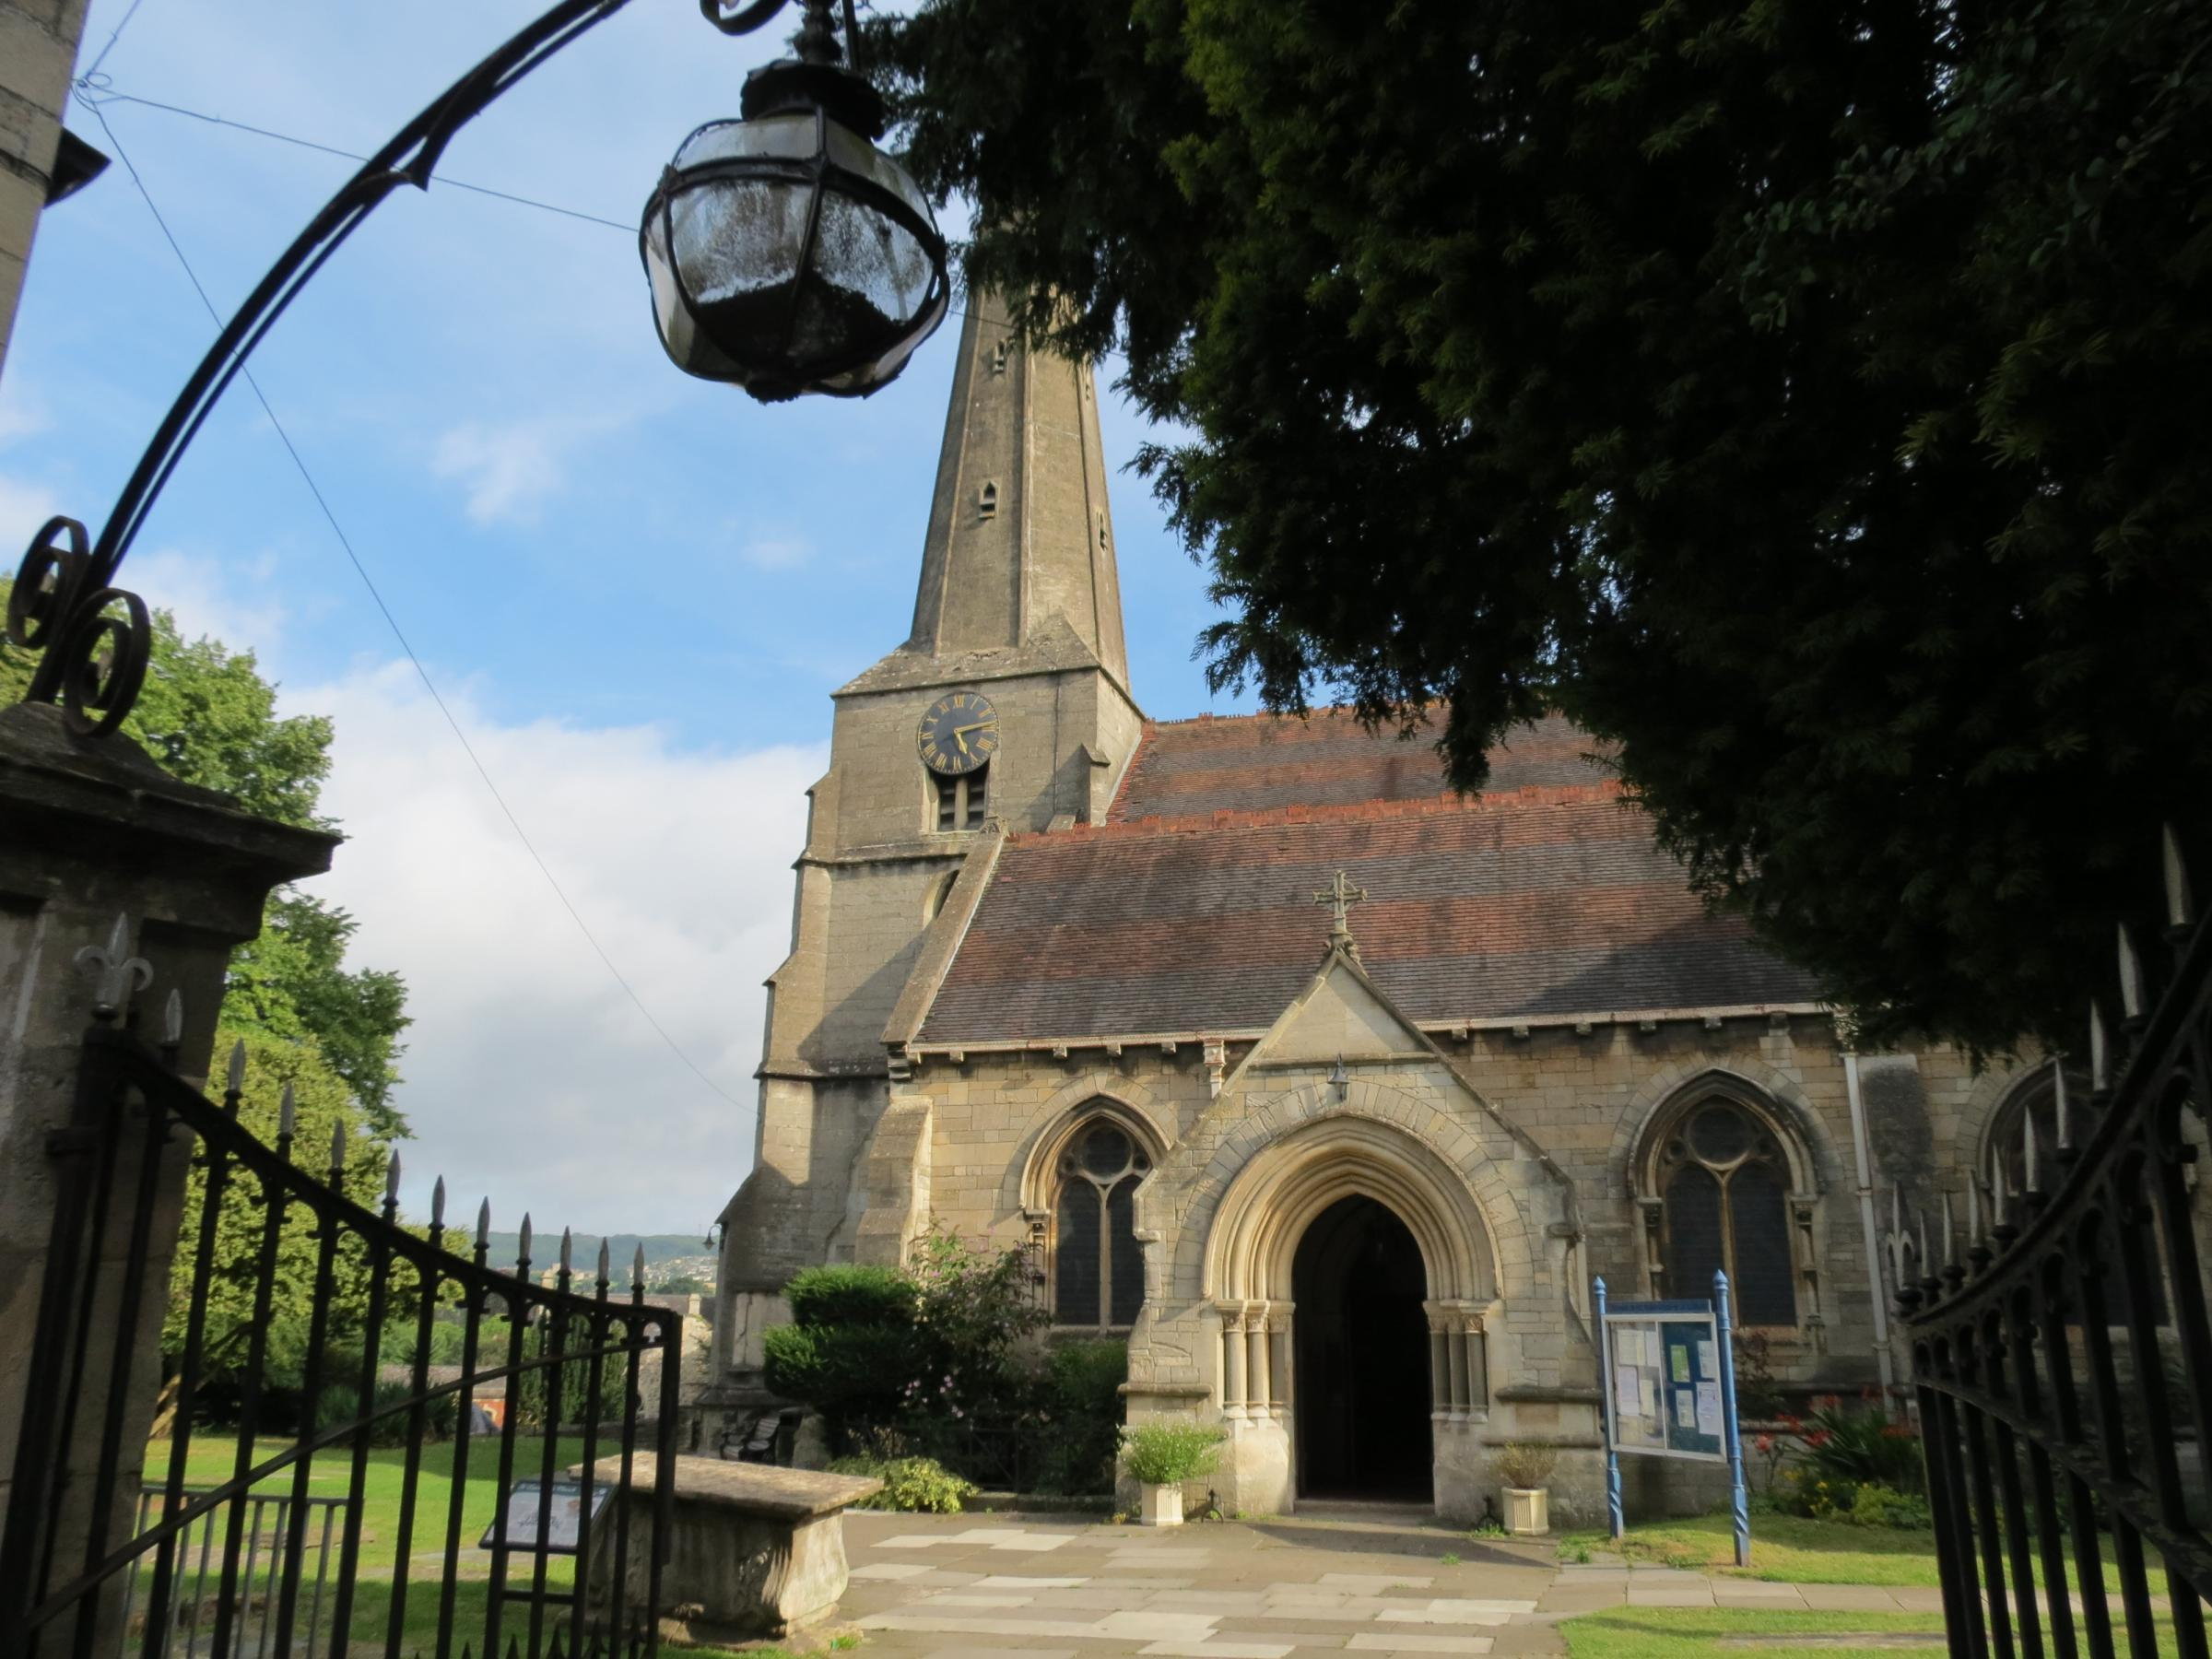 Saint Laurence Church in Stroud